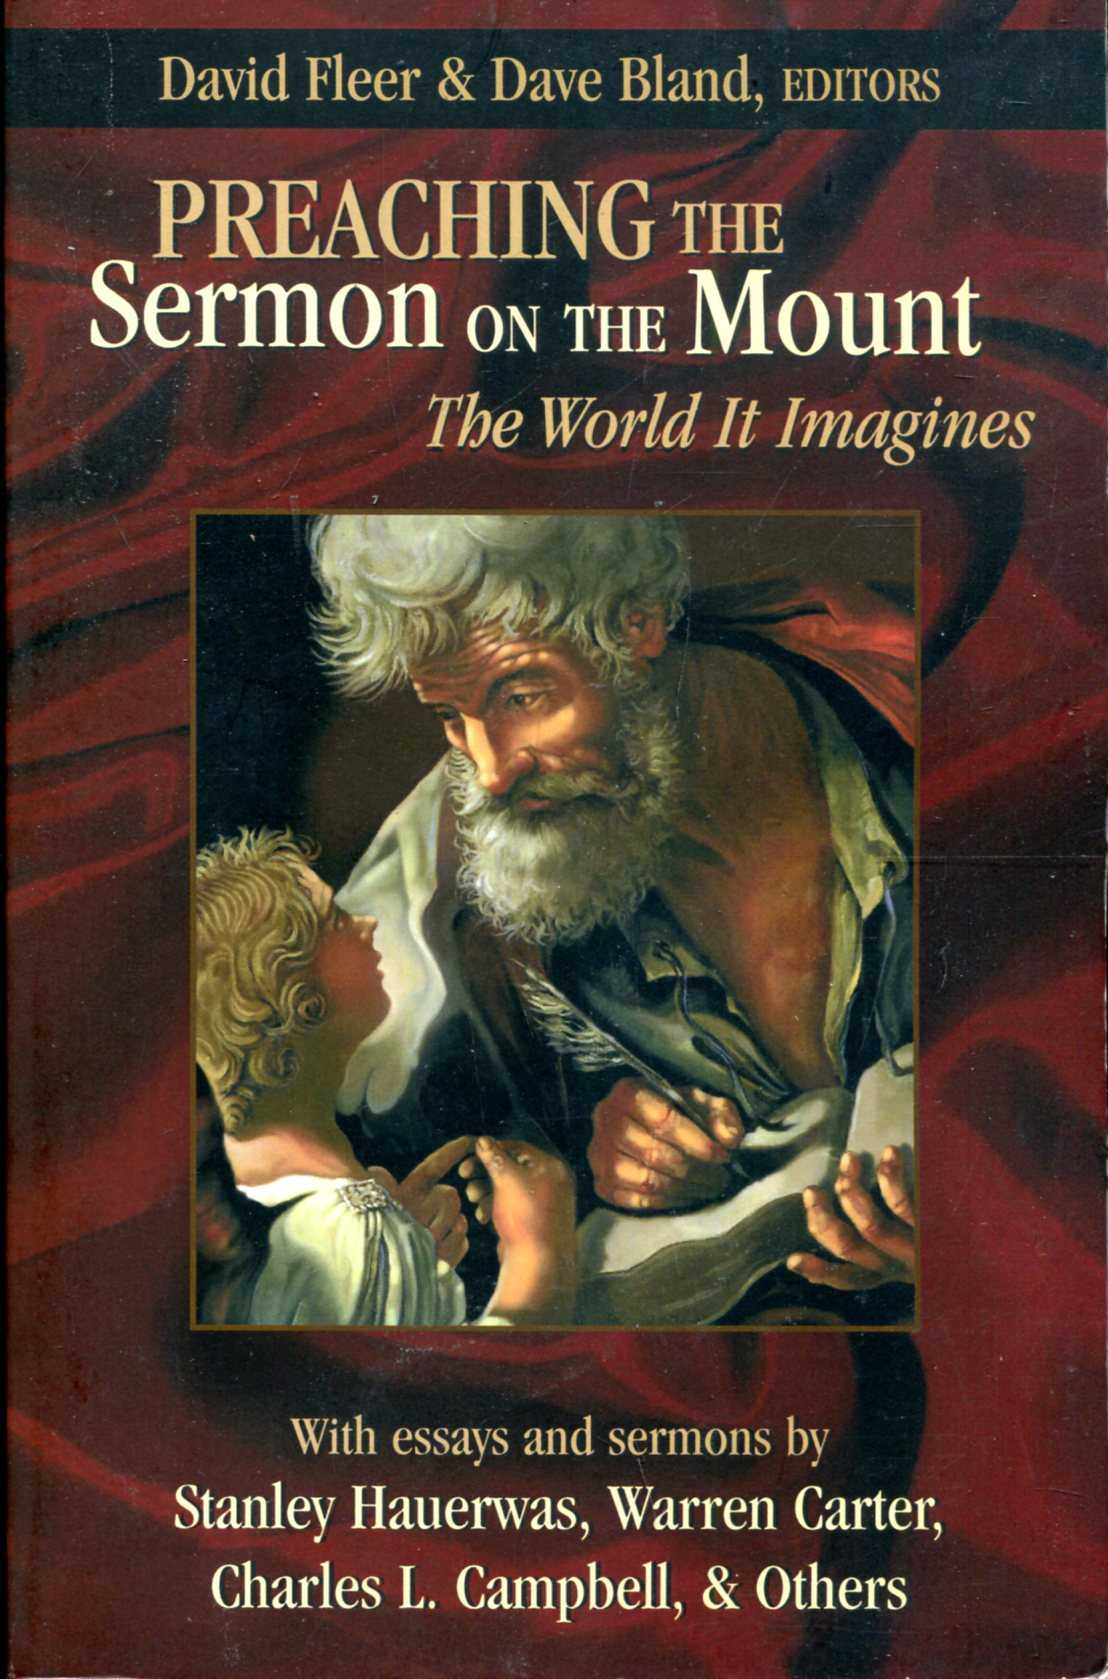 Image for Preaching the Sermon on the Mount: The World It Imagines